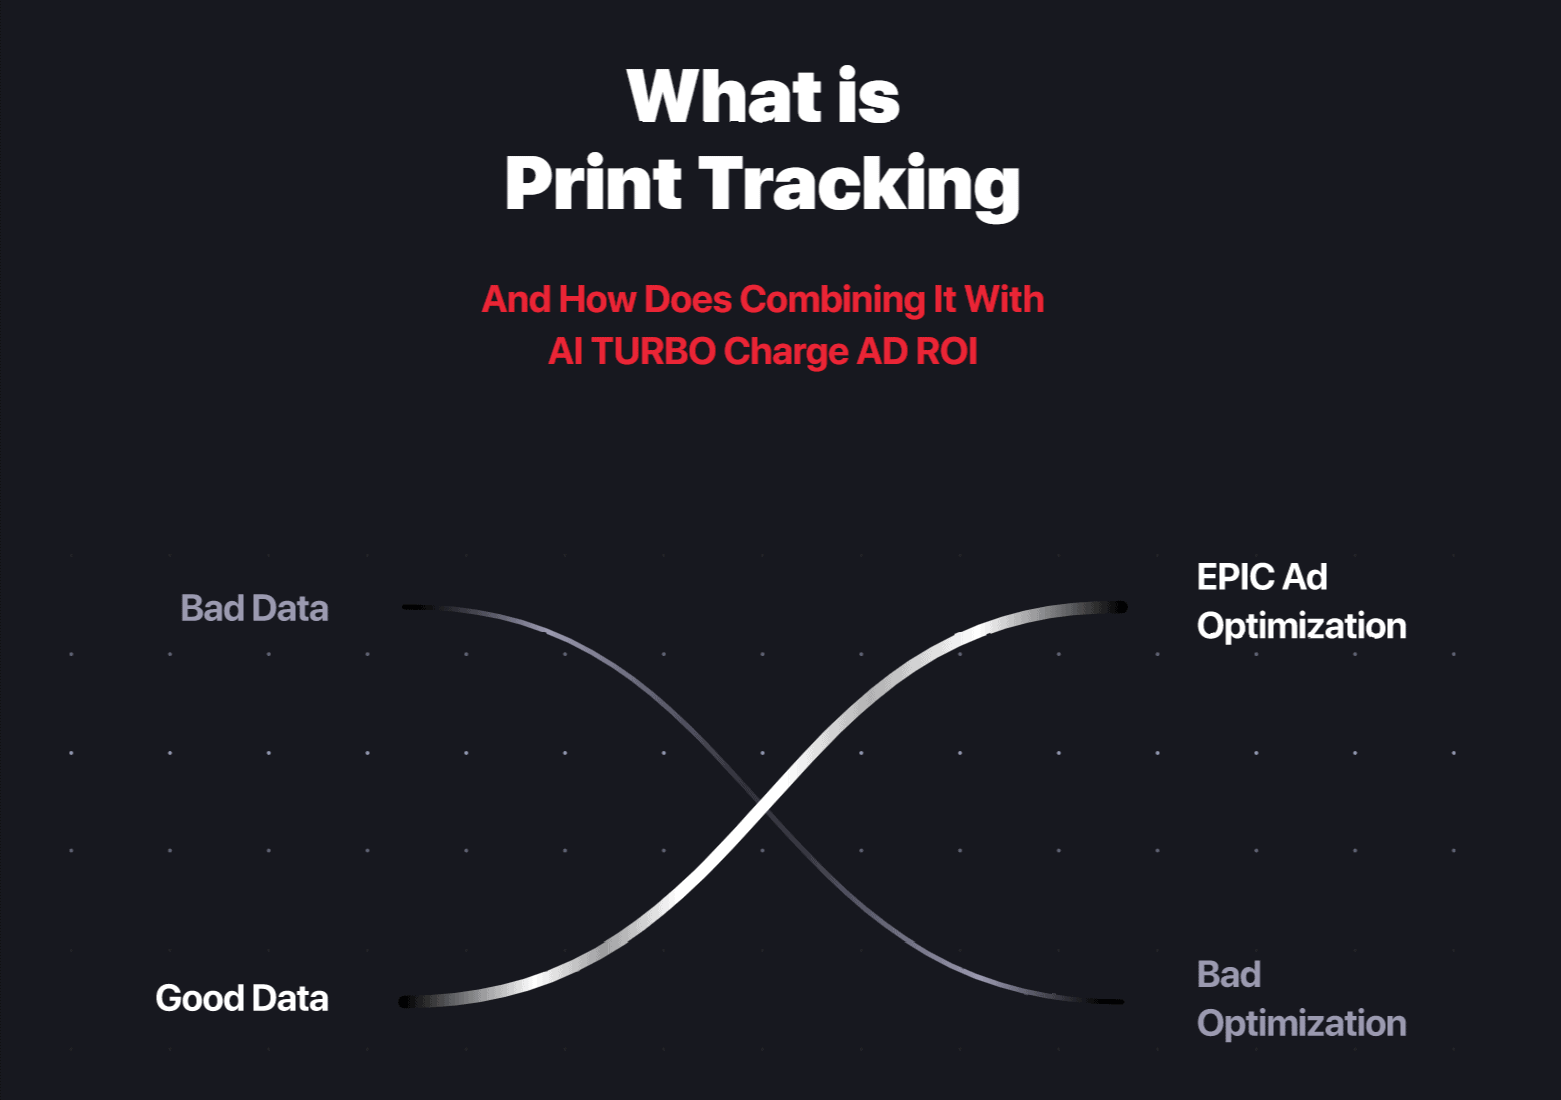 What is print Tracking